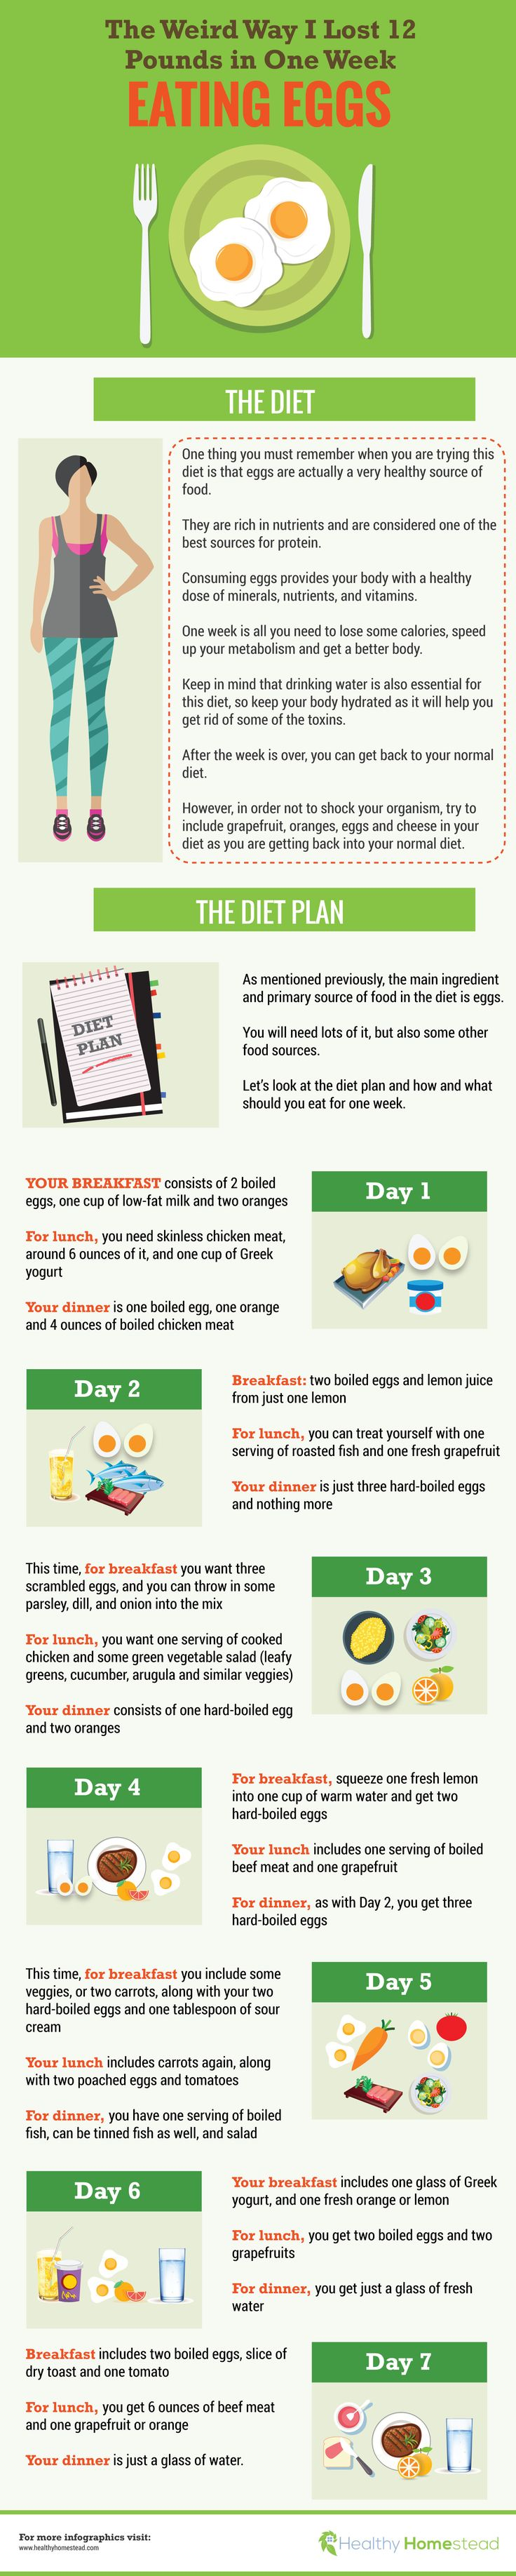 Egg diet for 7 days